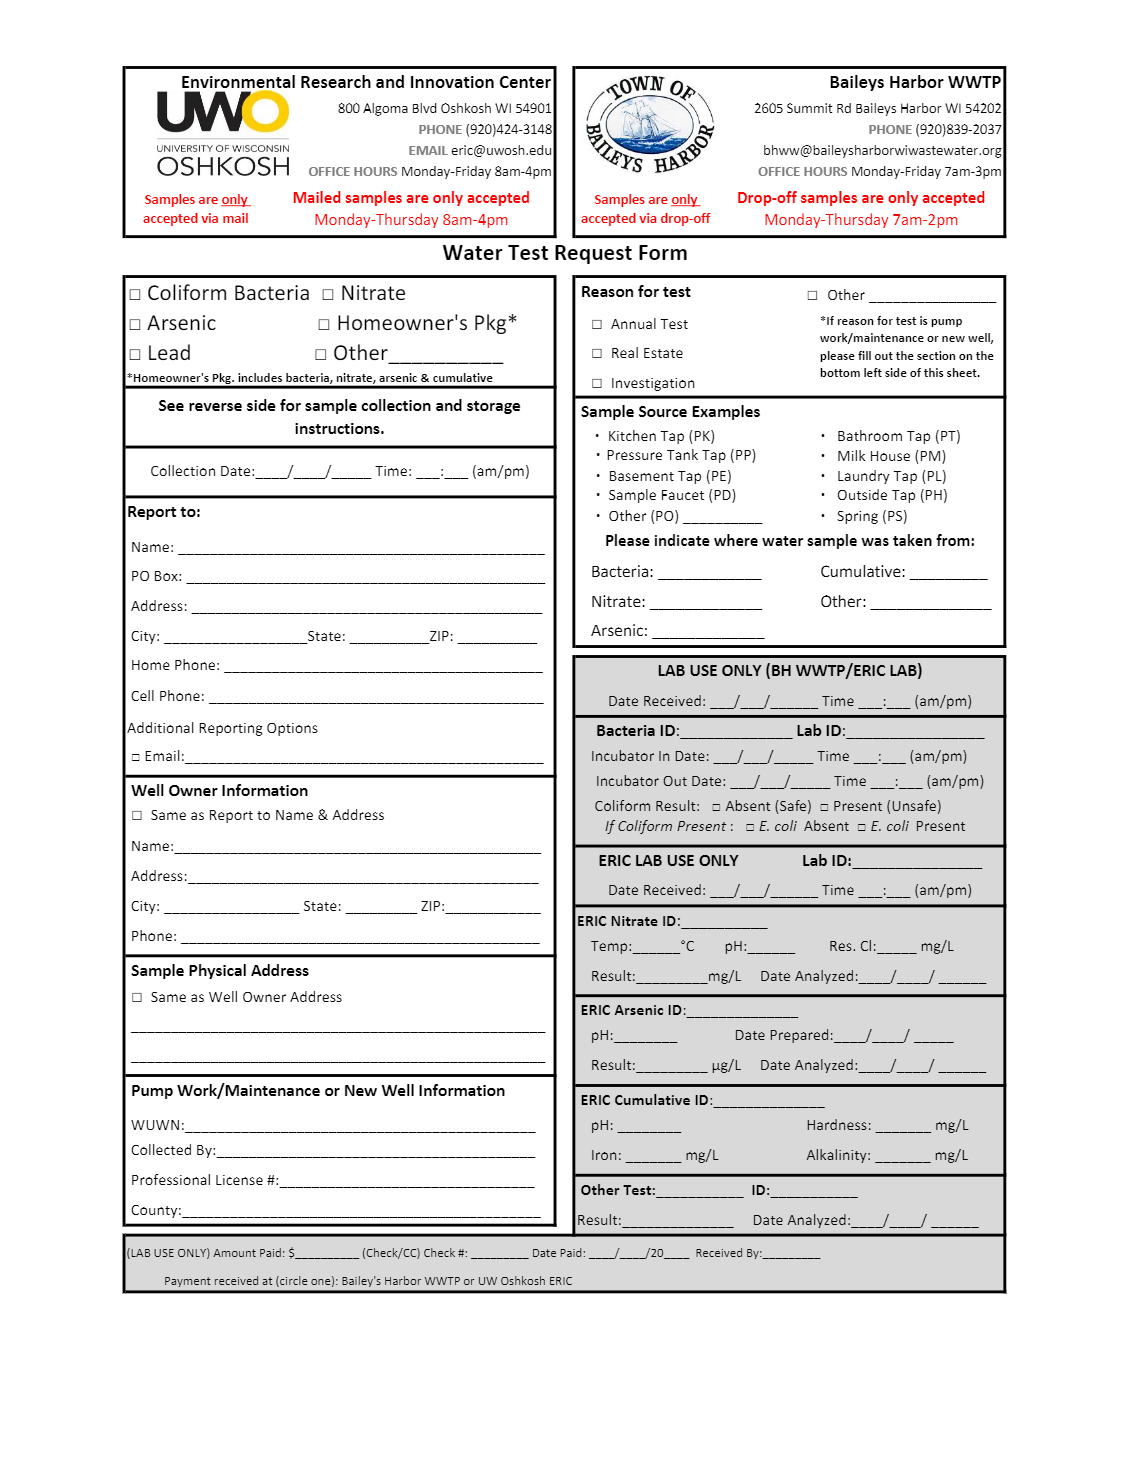 Water Test Request Form p1